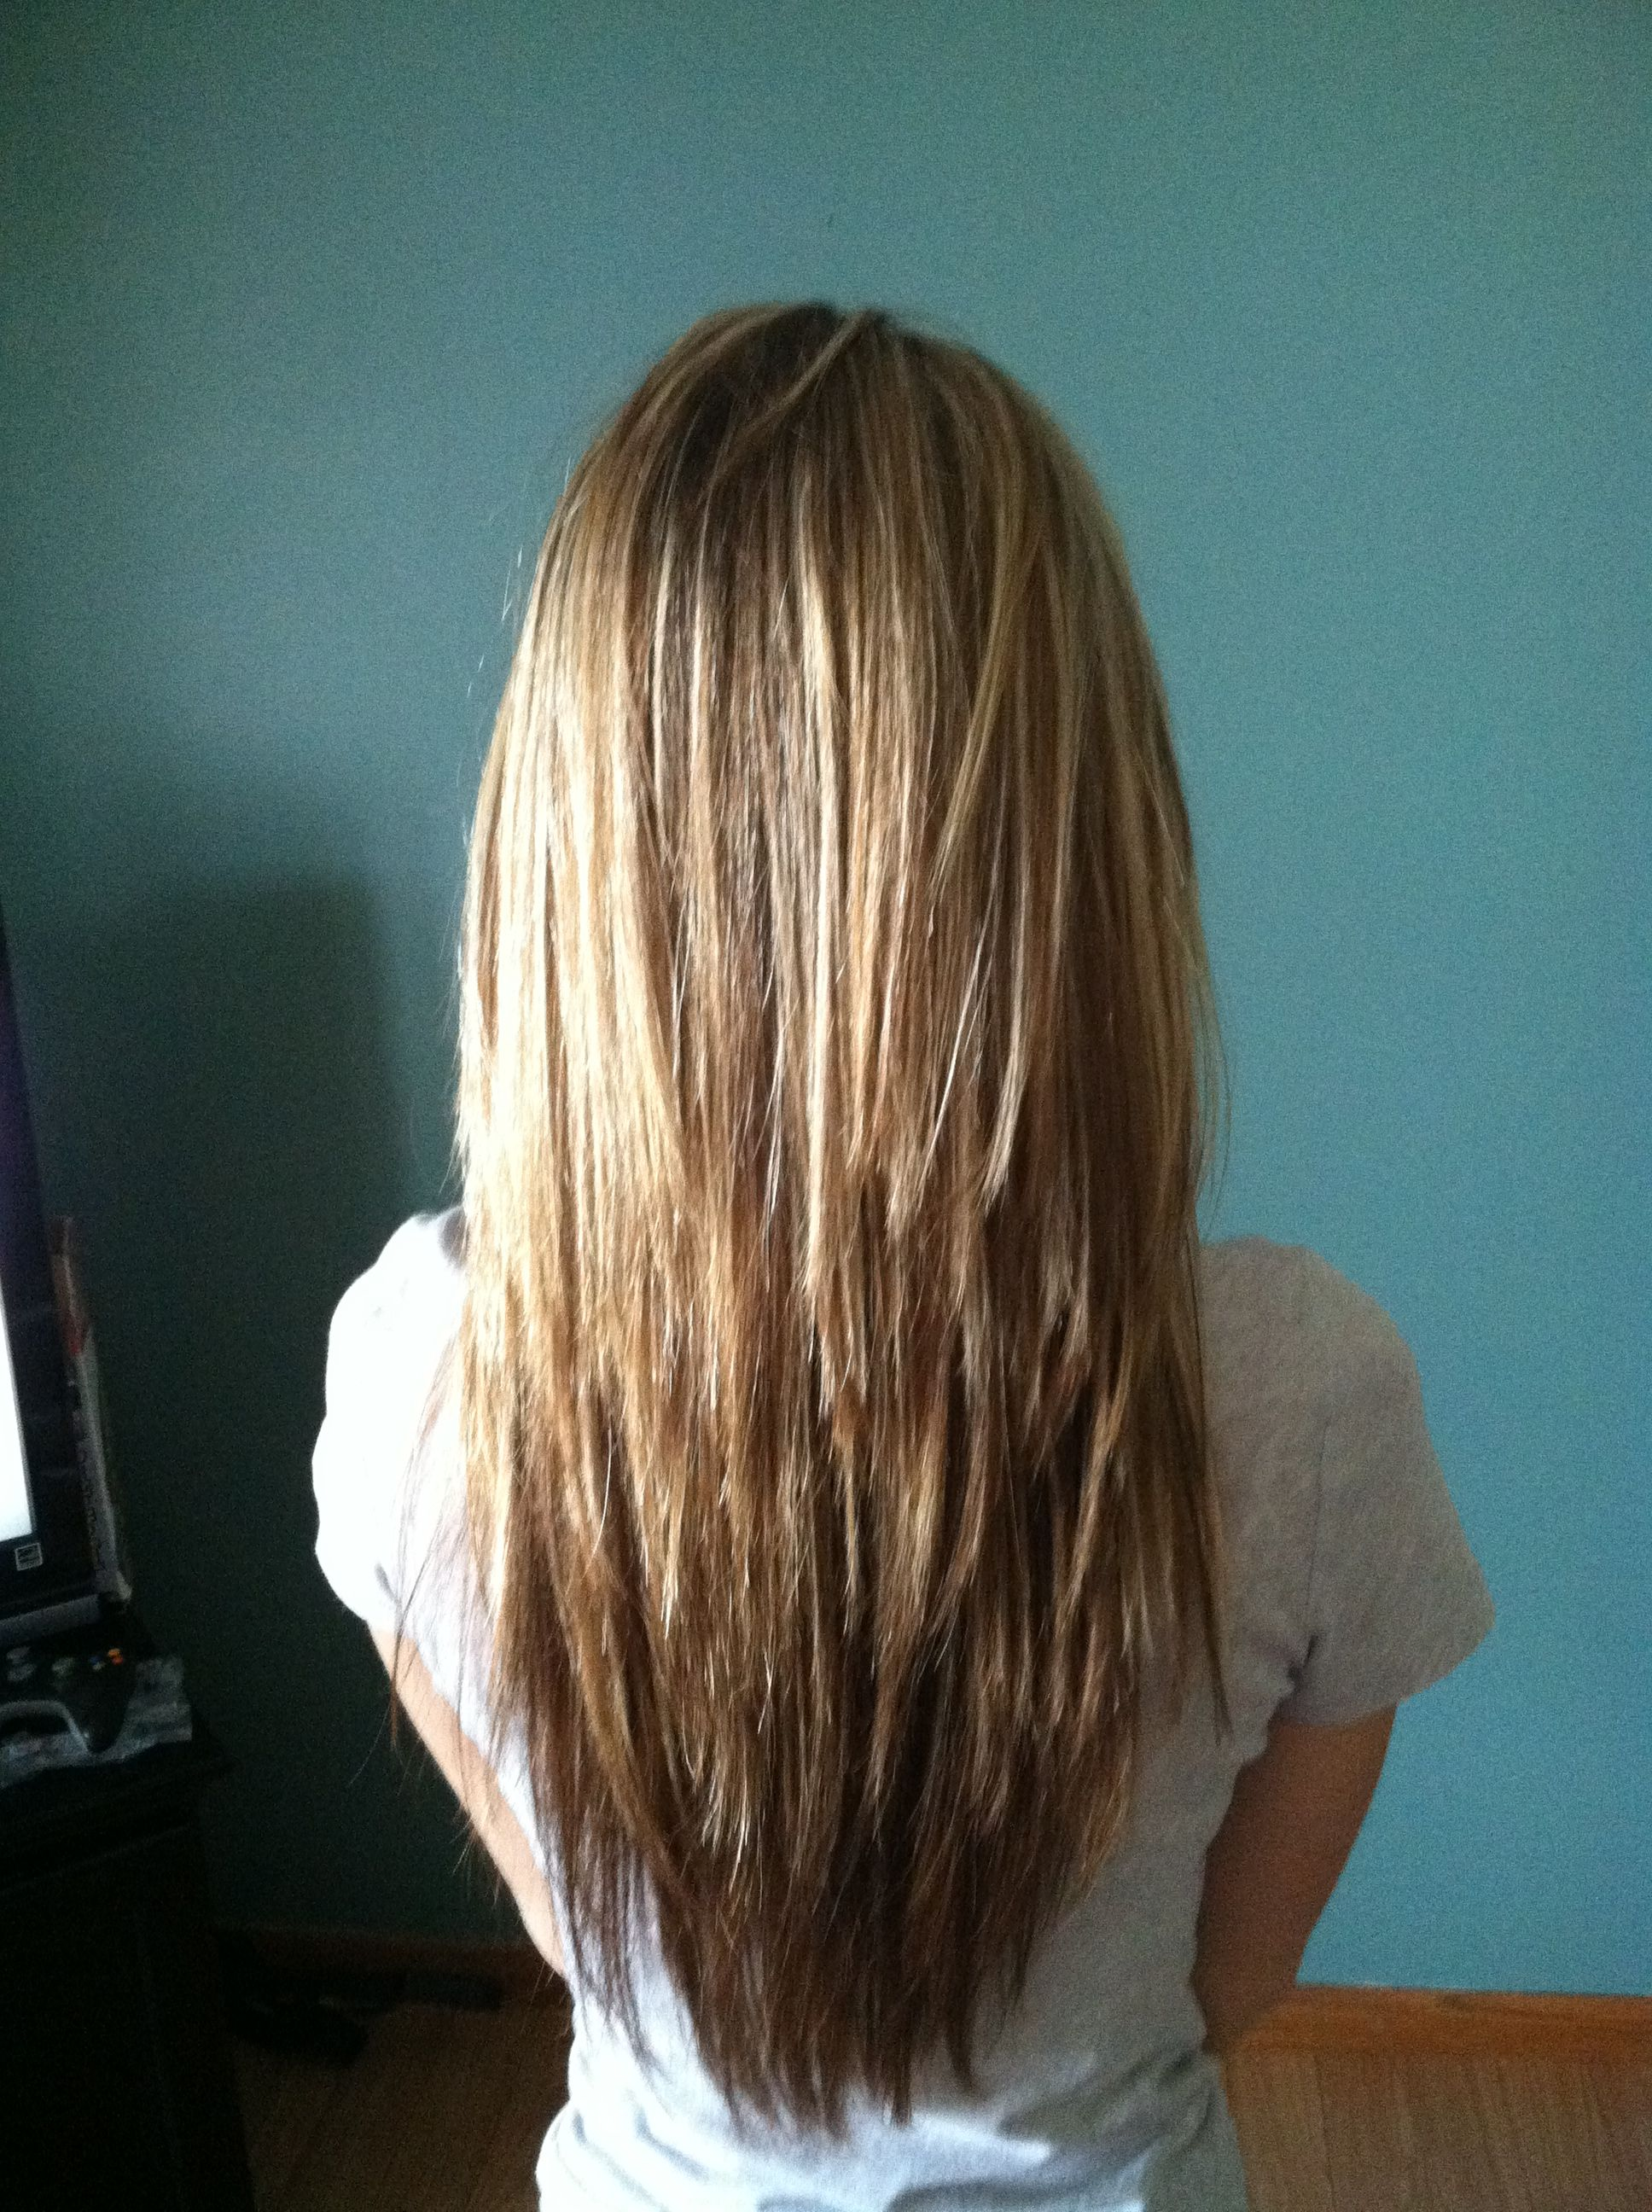 25 Best New Hairstyles For Long Haired Hotties Popular Haircuts Long Hair Styles Long Layered Hair Hair Styles